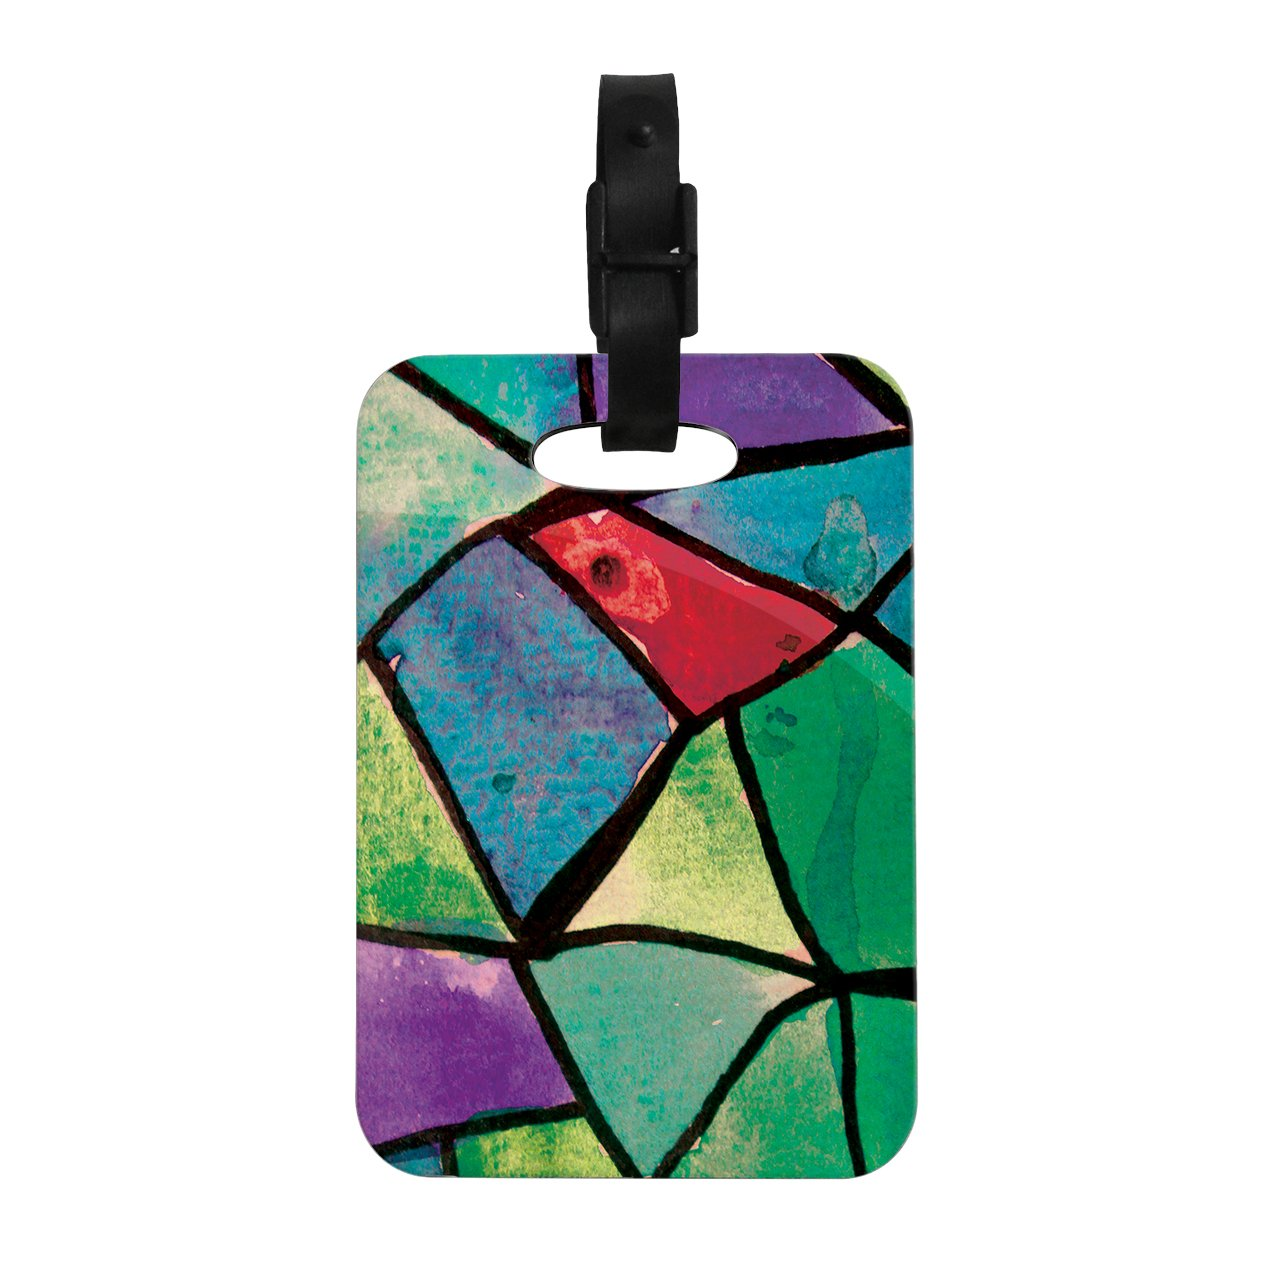 Kess InHouse Theresa Giolzetti Stain Glass 1'' Decorative Luggage Tag, 4 by 4-Inch